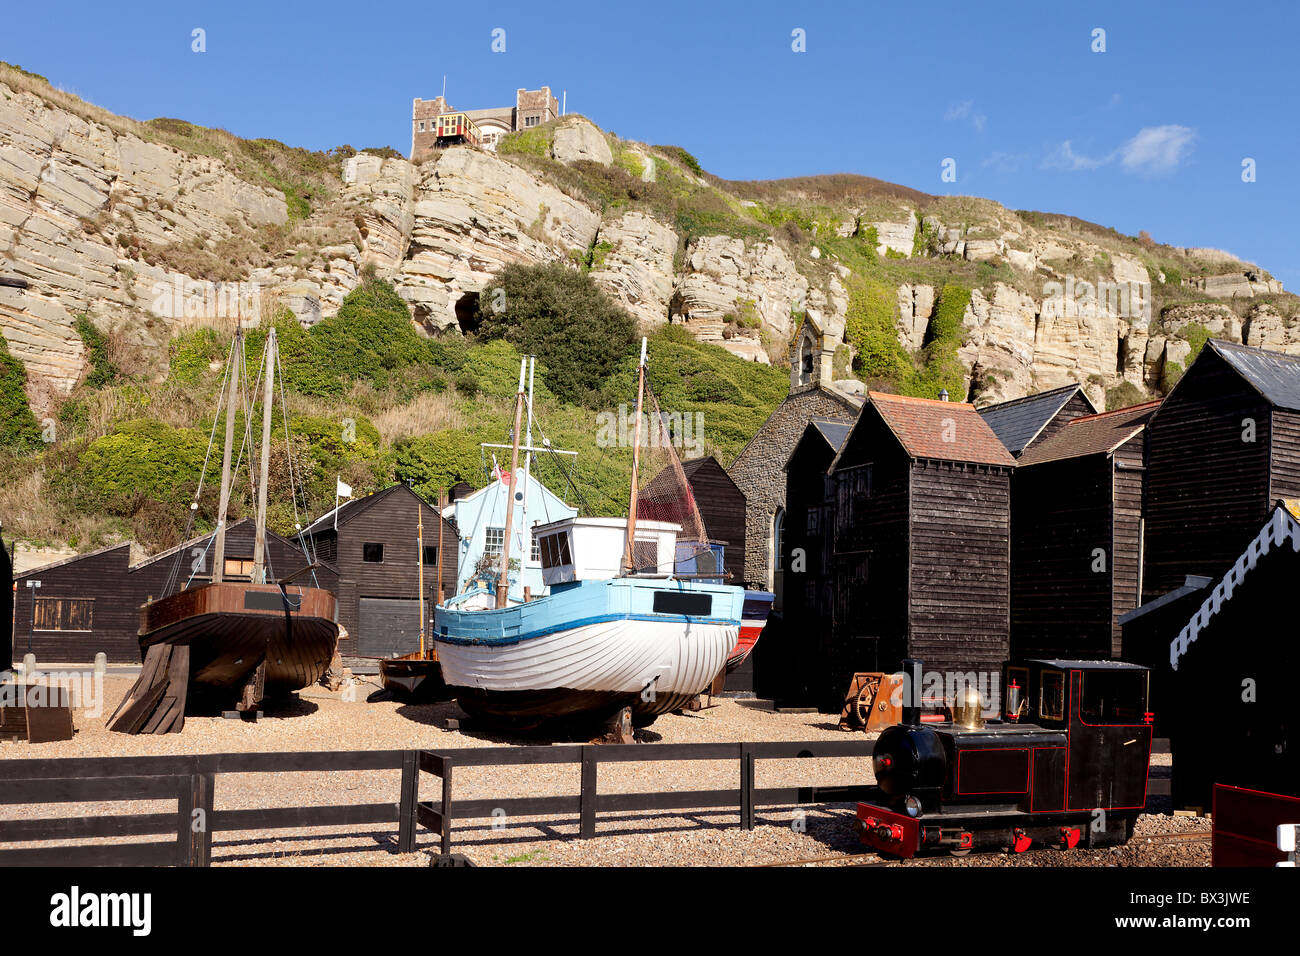 The Rock-a-Nore area and the Stade at Hastings in East Sussex, UK - Stock Image